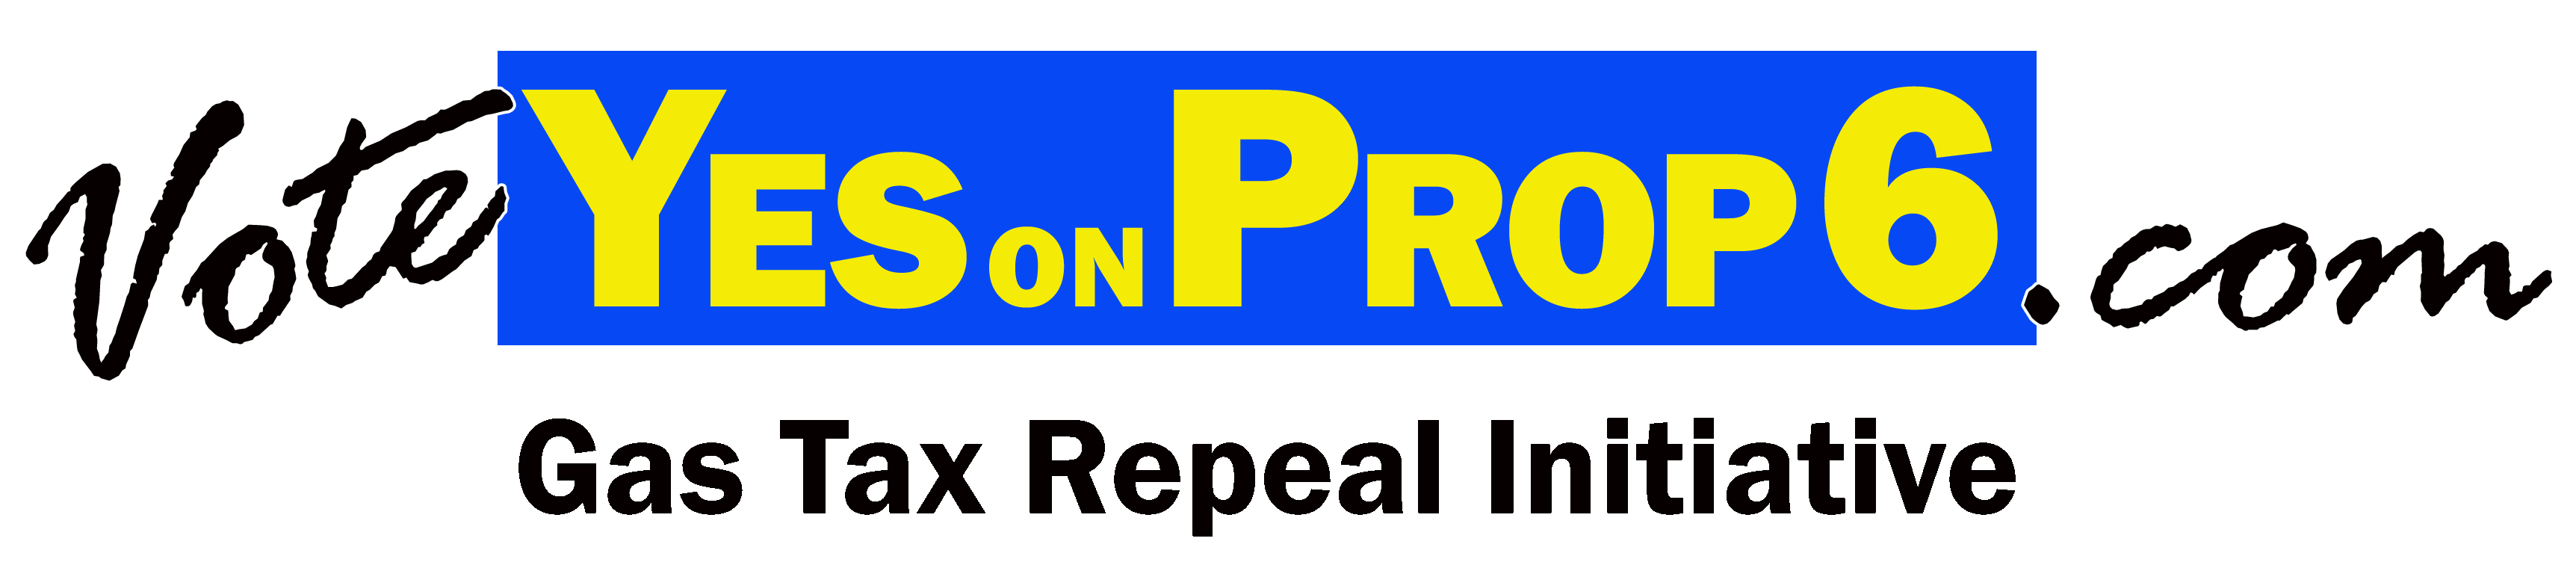 VOTE-YES-ON-PROP-6-LOGO-Transparent-Background.png